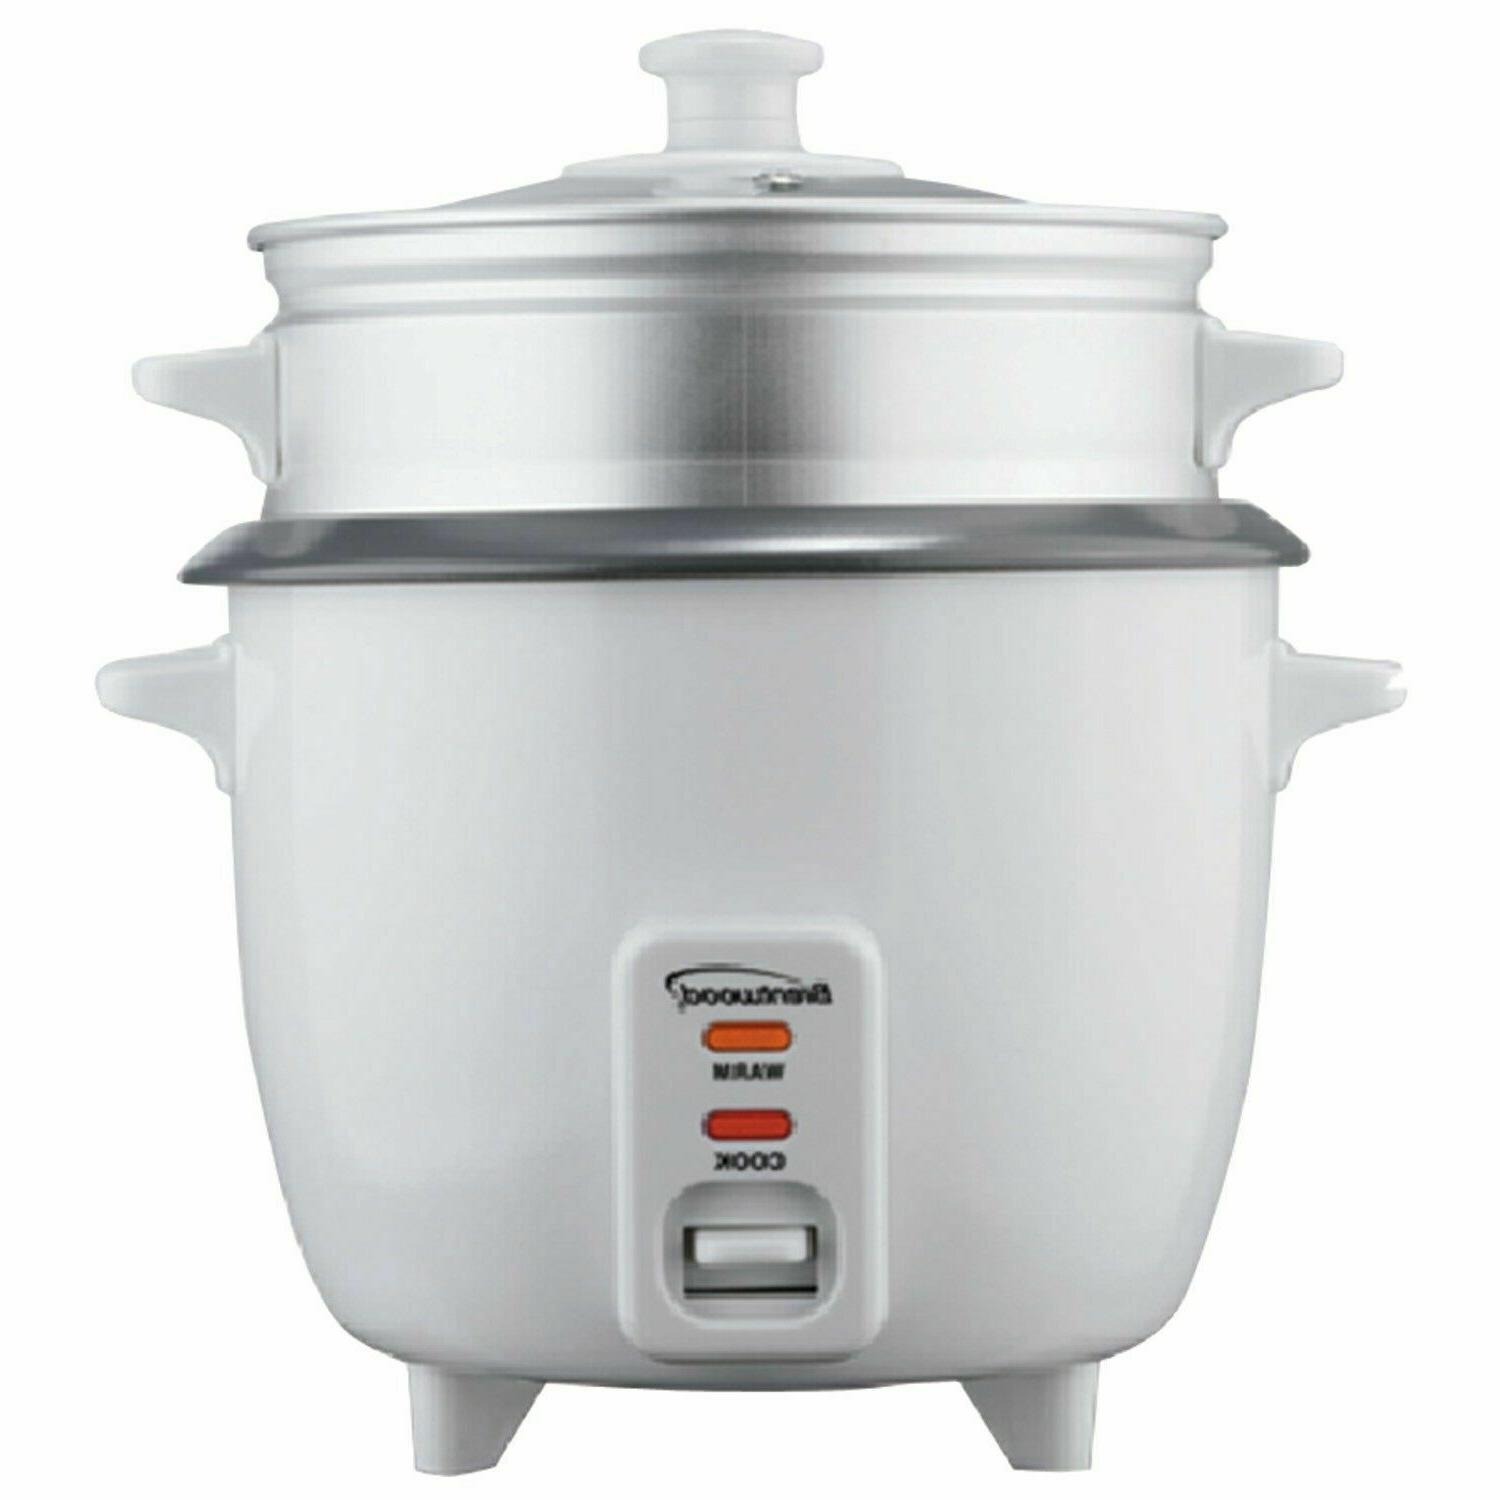 ts 380s rice cooker 10 cup